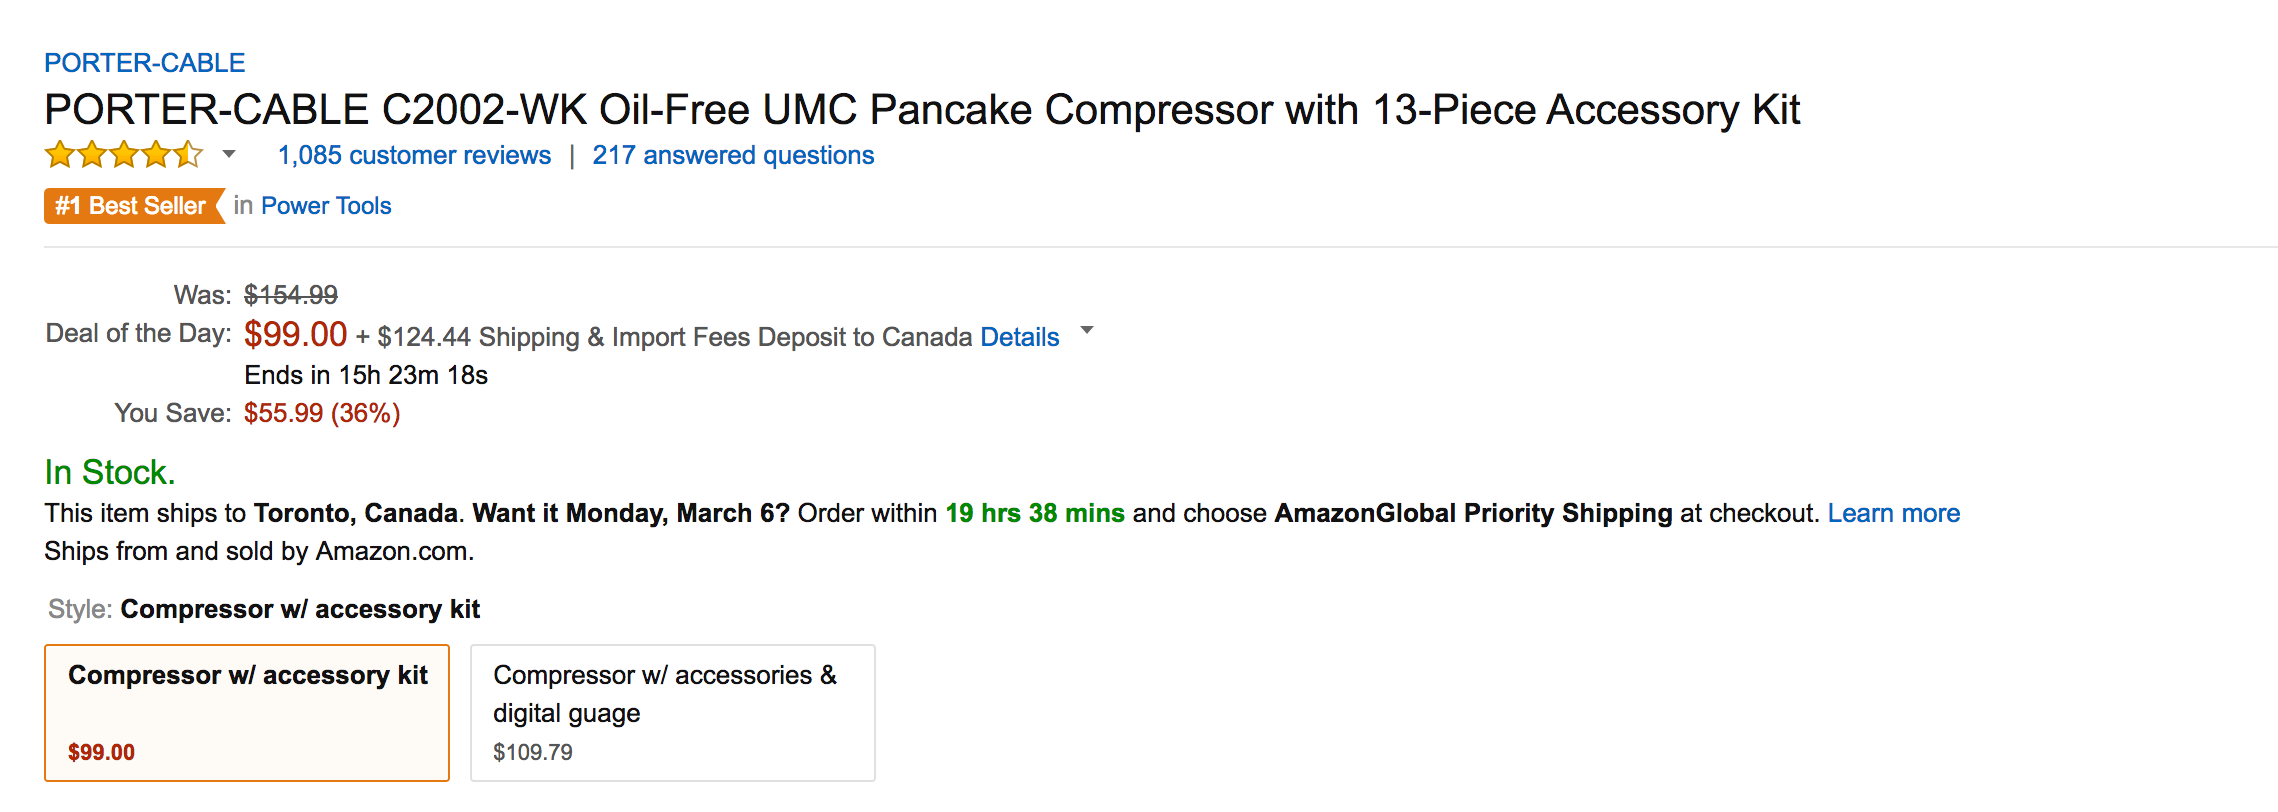 porter-cable-oil-free-umc-pancake-compressor-with-13-piece-accessory-kit-2